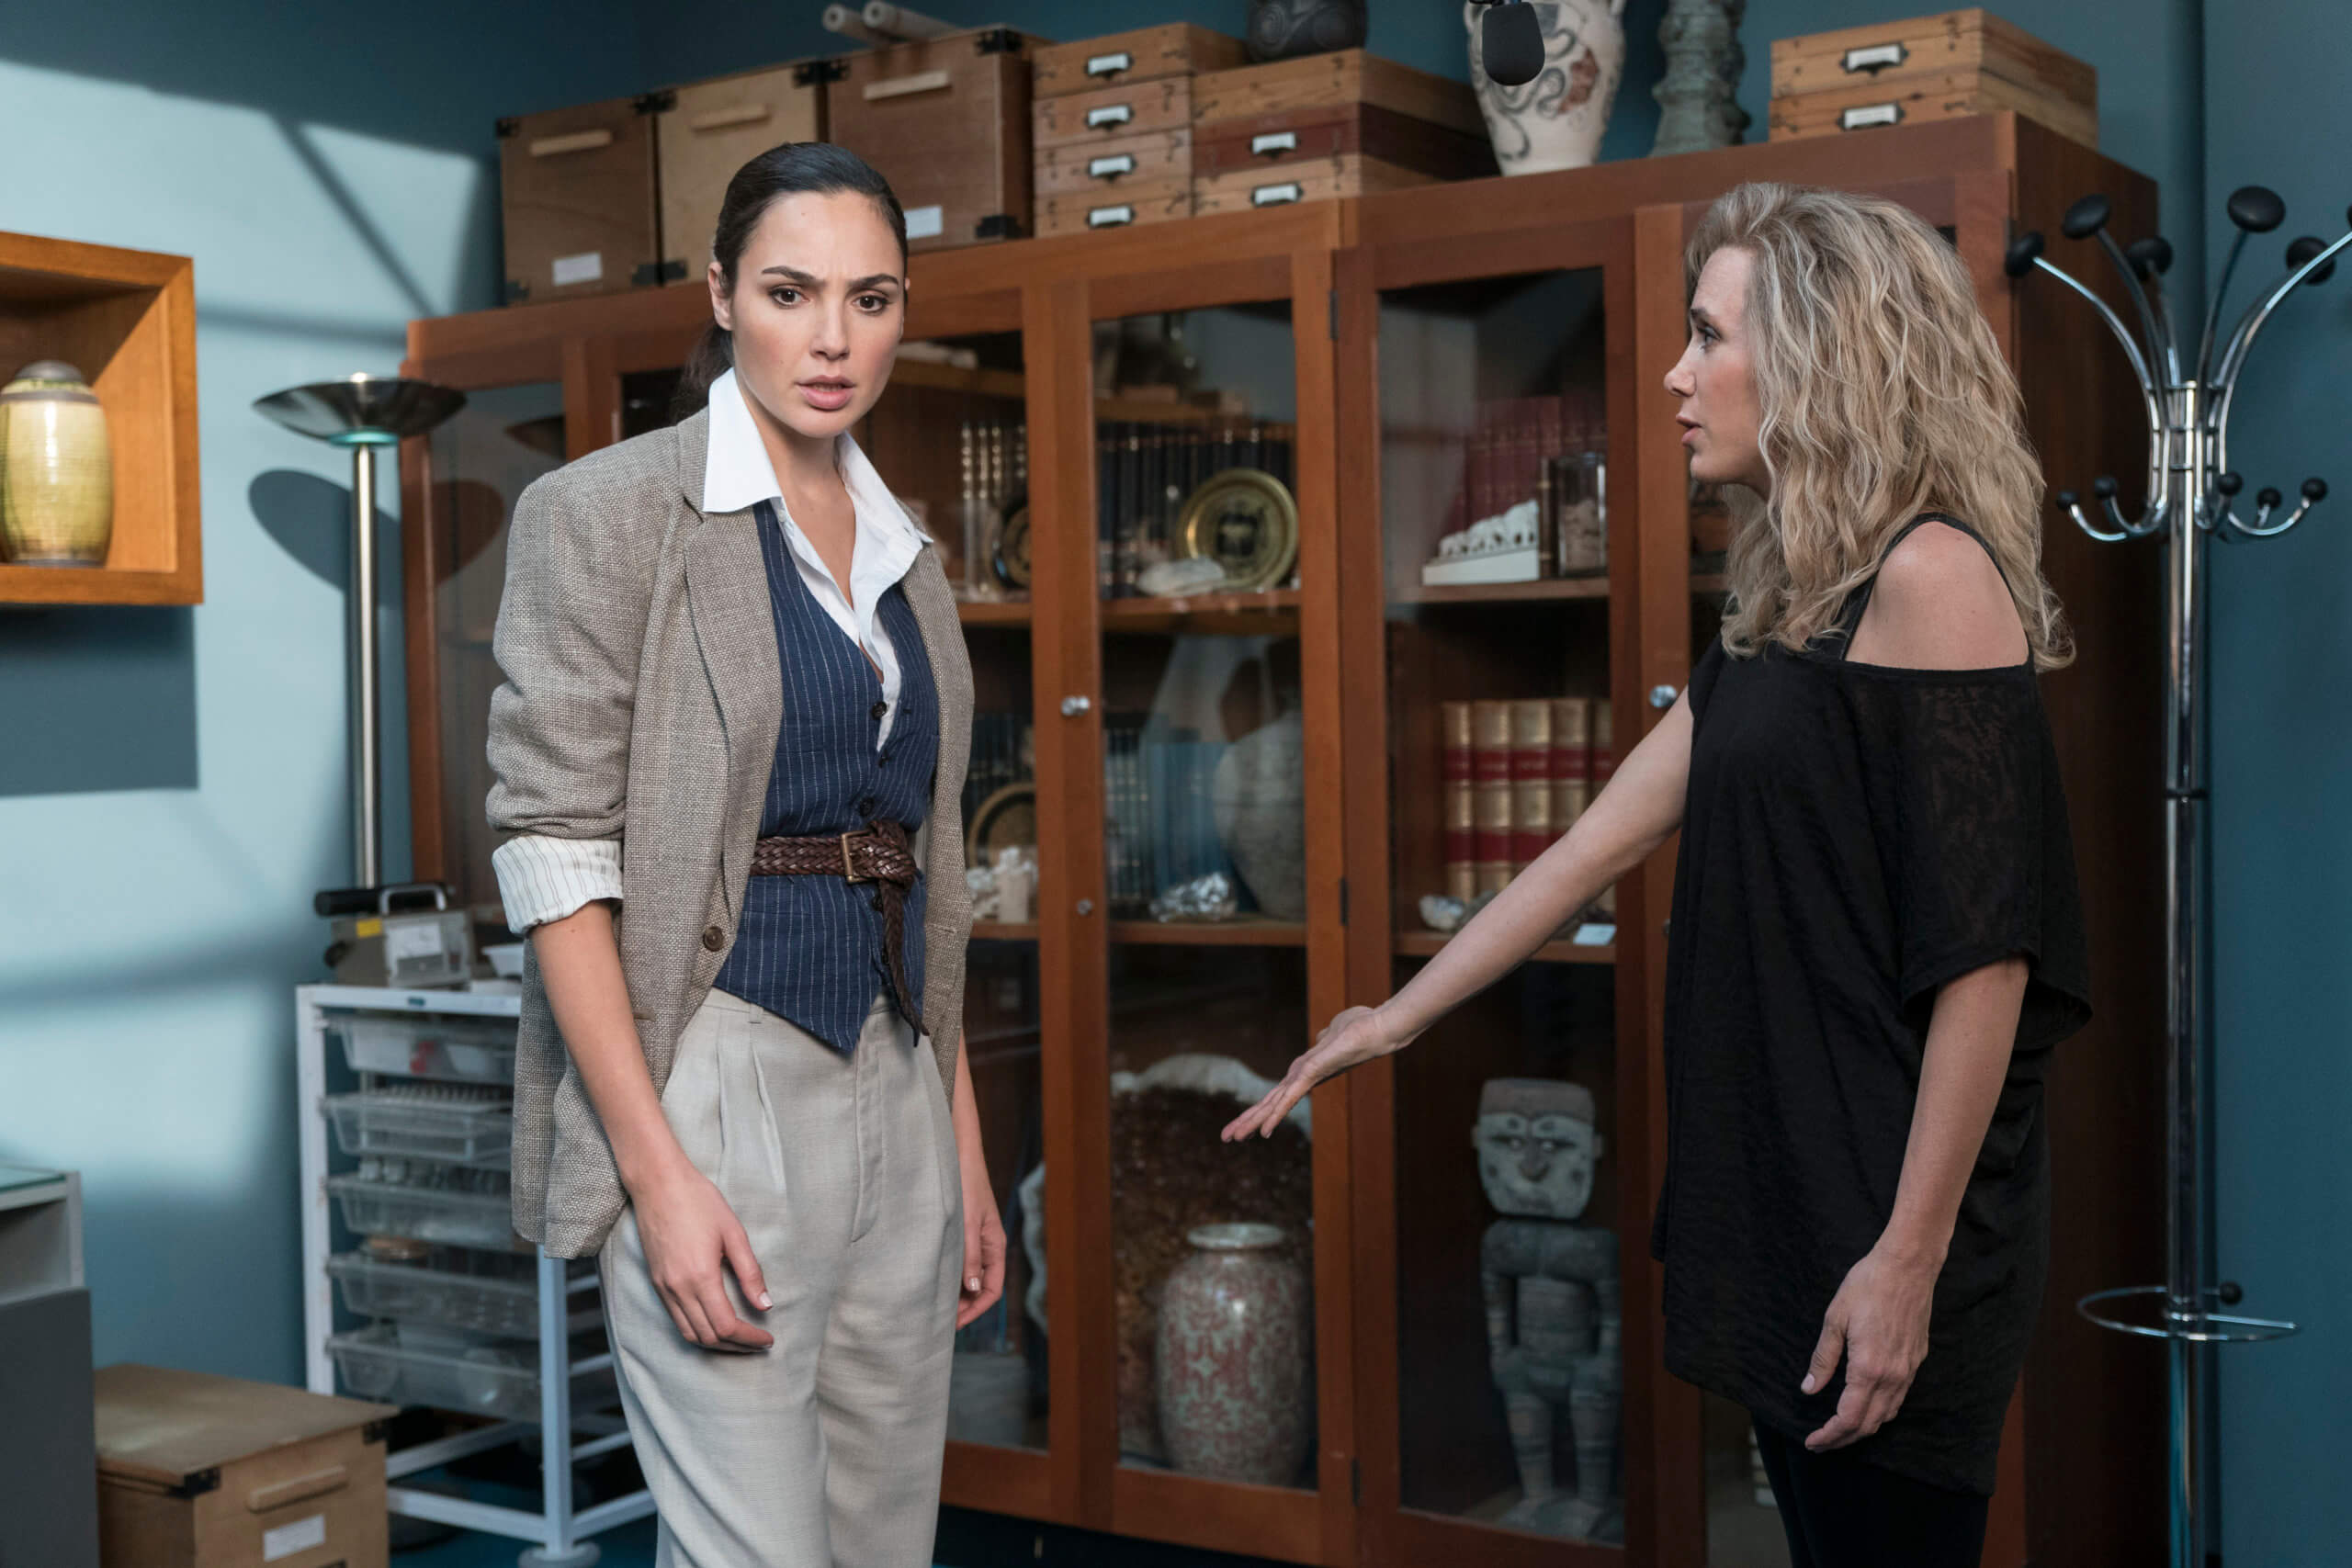 Gal Gadot as Diana Prince with Kristen Wiig as Barbara Minerva in Wonder Woman 1984. Patty Jenkins (Director and Writer). Image courtesy Warner Brothers Media